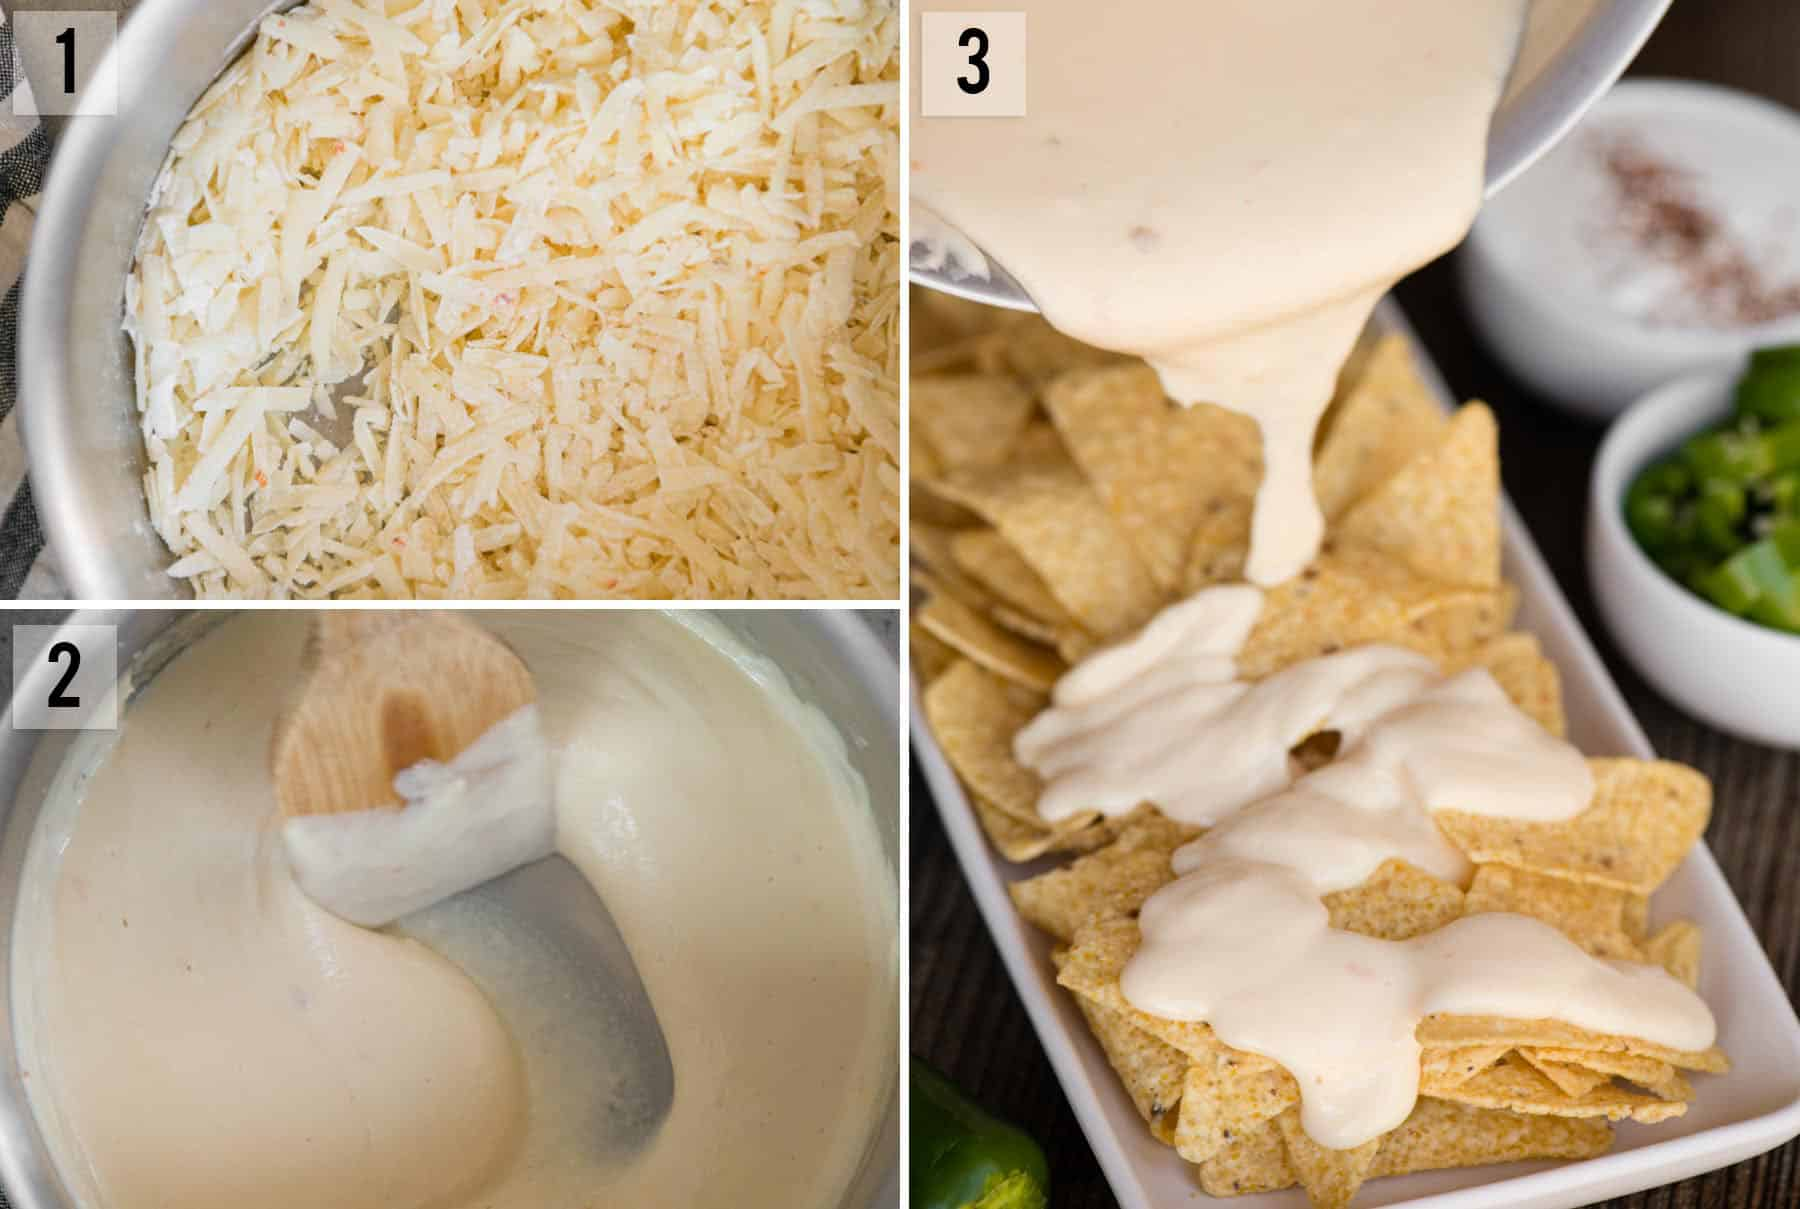 step by step photos for Homemade Nacho Cheese recipe